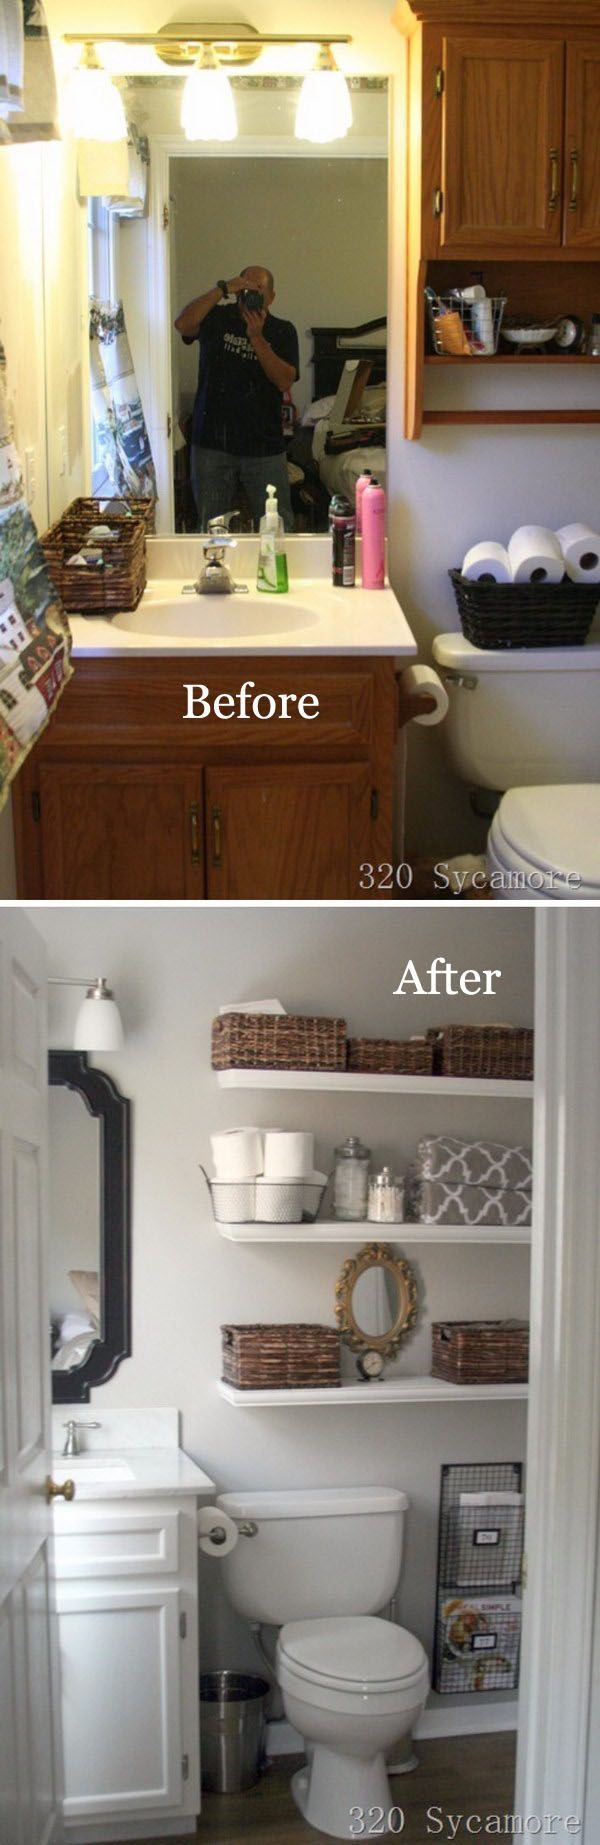 Master Bath Remodel Ideas Decor Alluring Best 25 Small Master Bathroom Ideas Ideas On Pinterest  Small . Inspiration Design